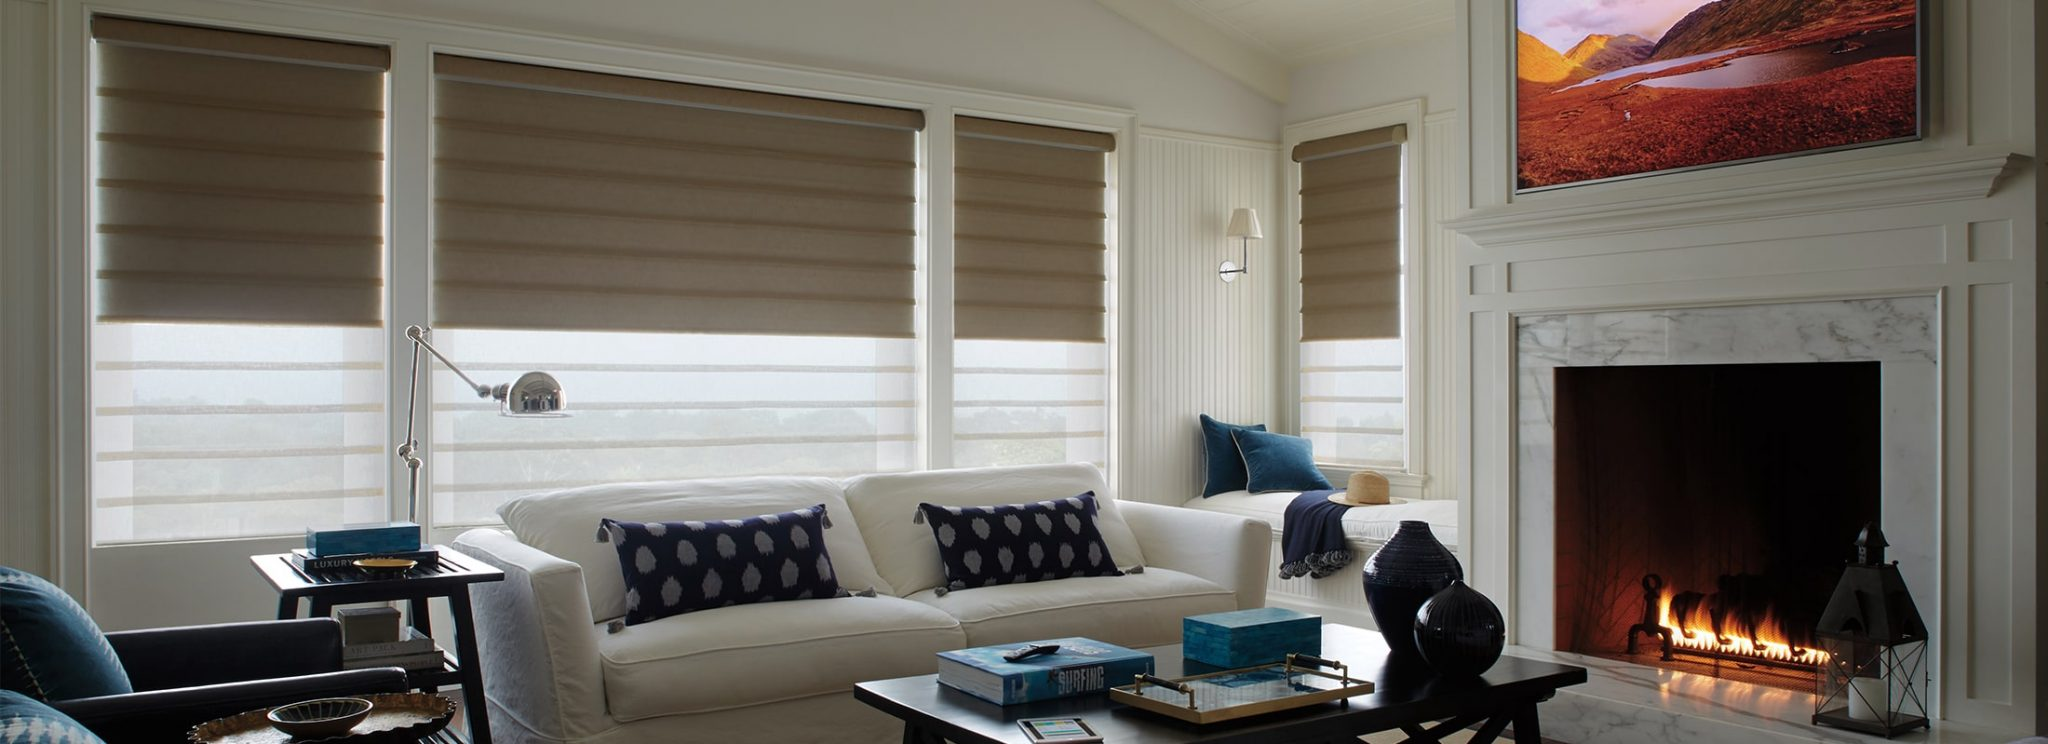 Hunter Douglas Window Fashions Vignette Modern Roman Shades Northwest Window Coverings